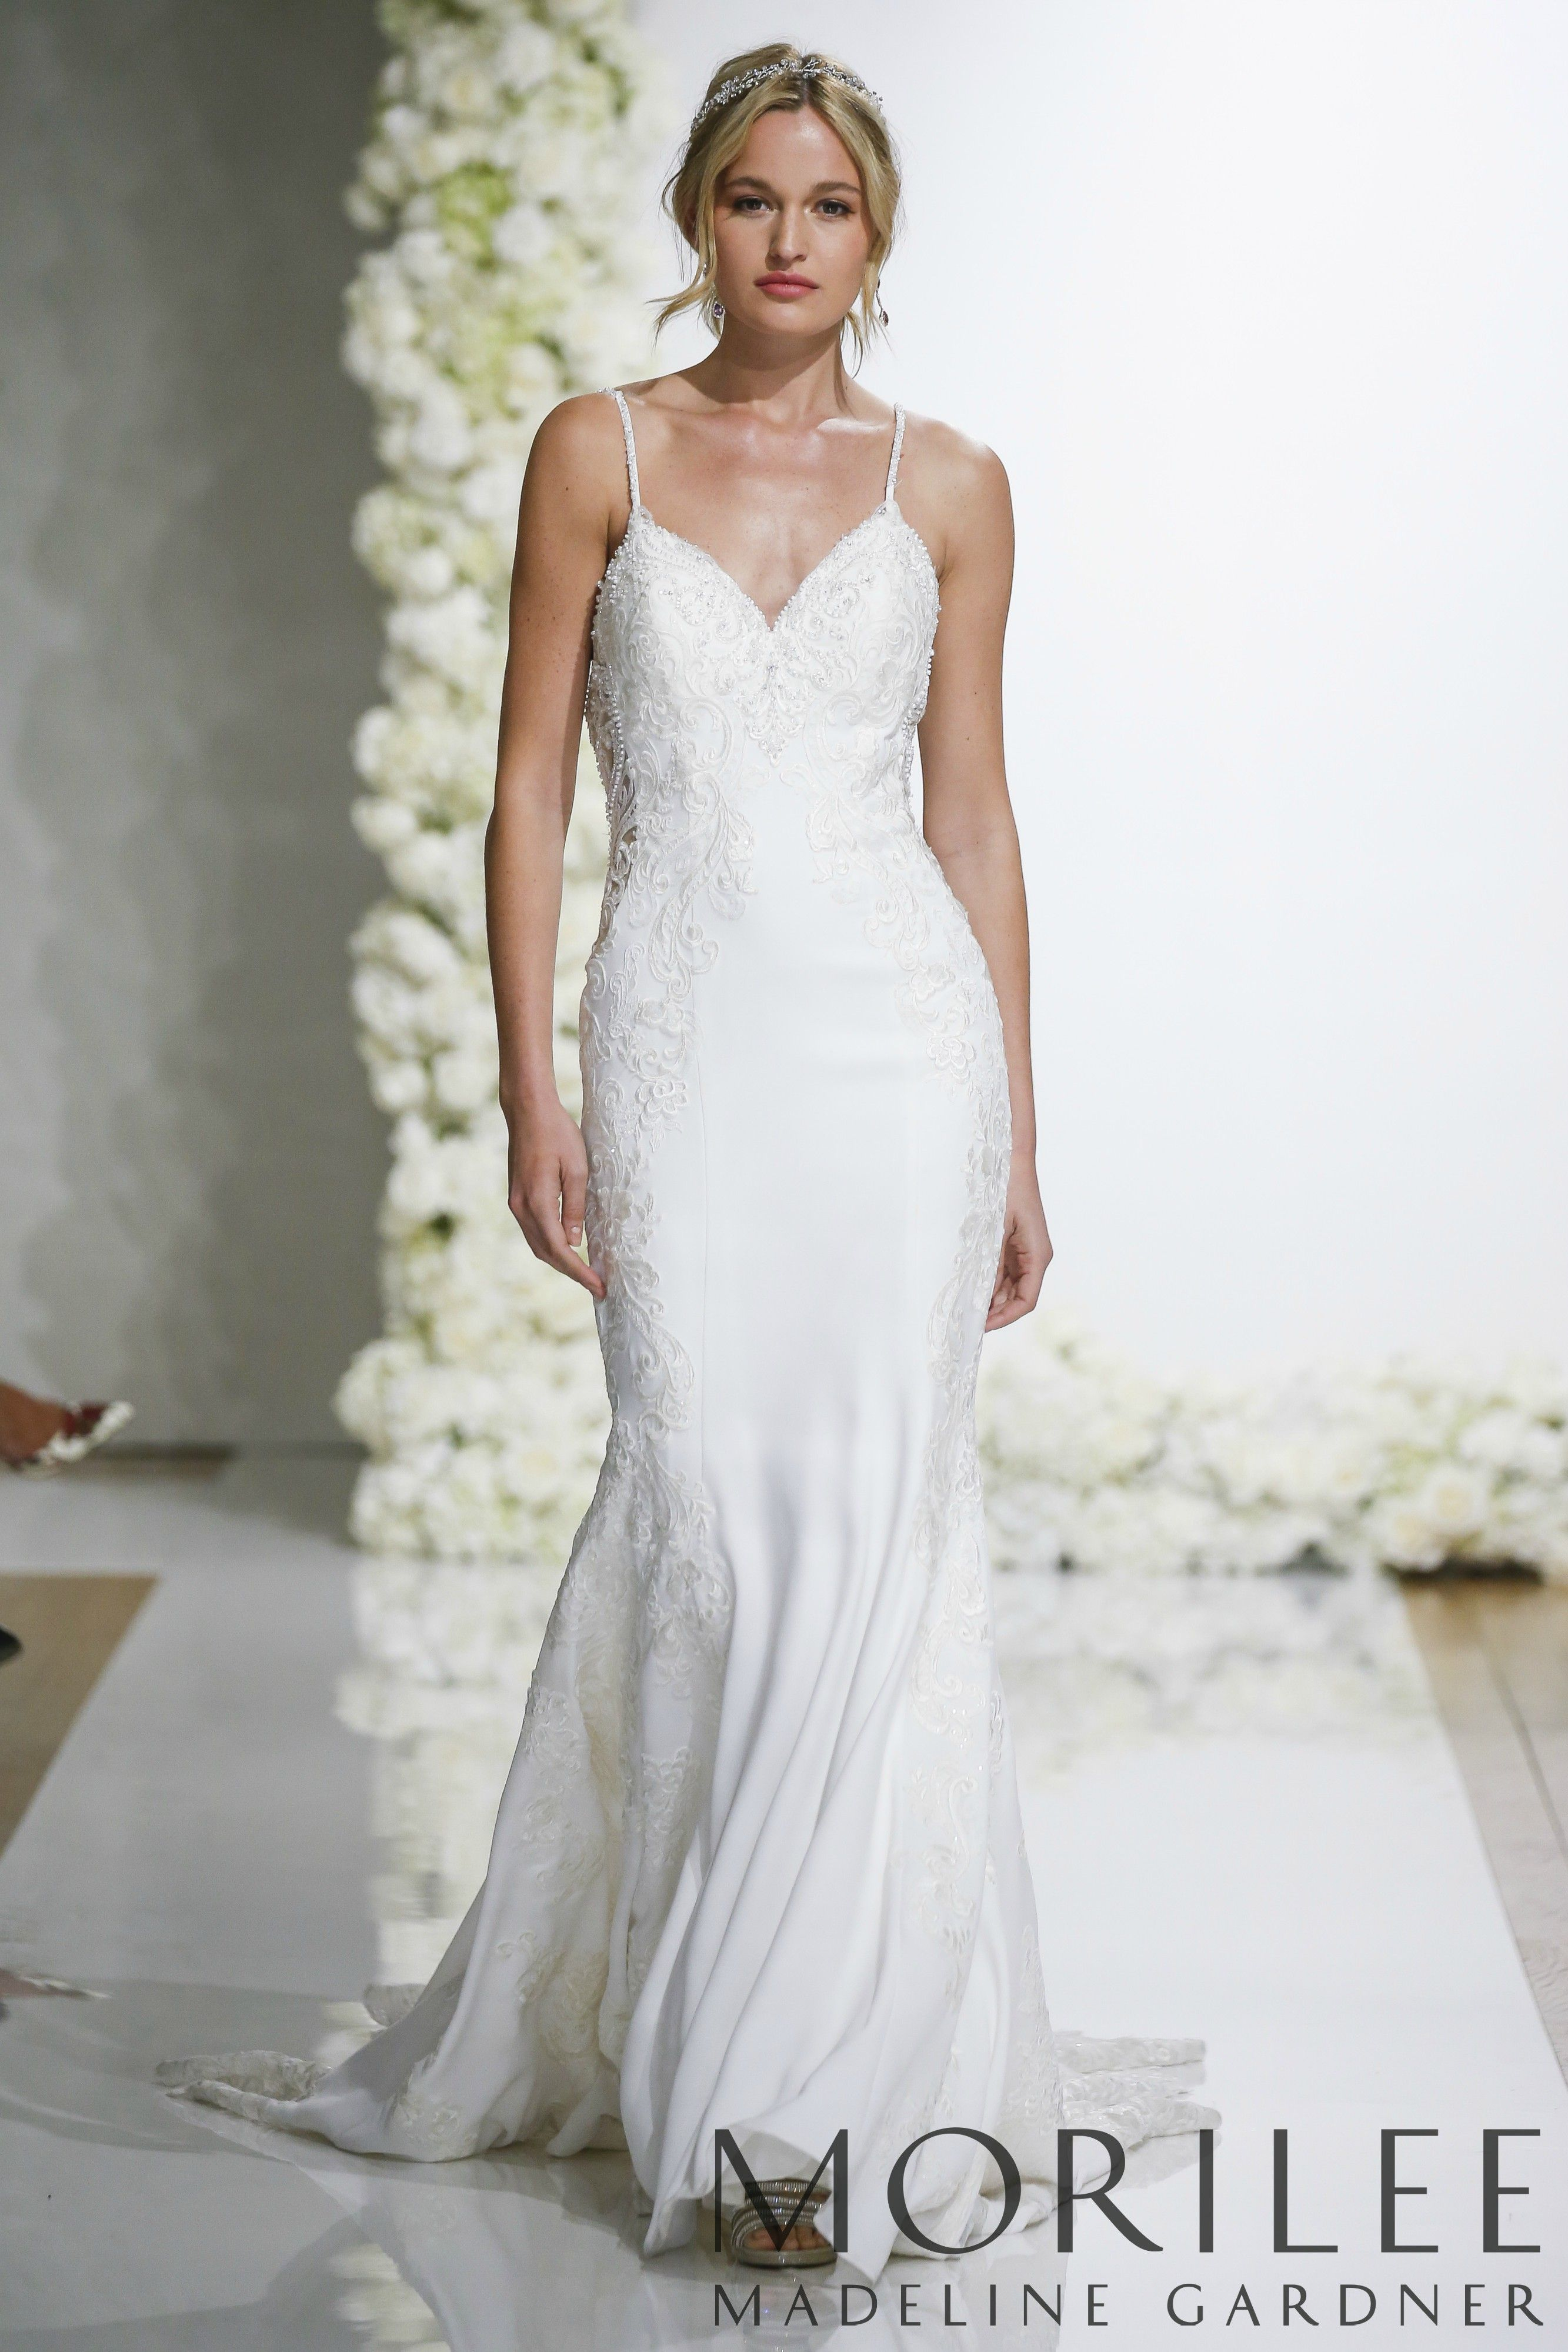 62ec04c35252 Morilee | Madeline Gardner, Lizzie Style 8283 | Form Fitting Crepe Wedding  Dress Featuring Beaded, Embroidered Appliqués with Sheer Sides and Sheer,  ...